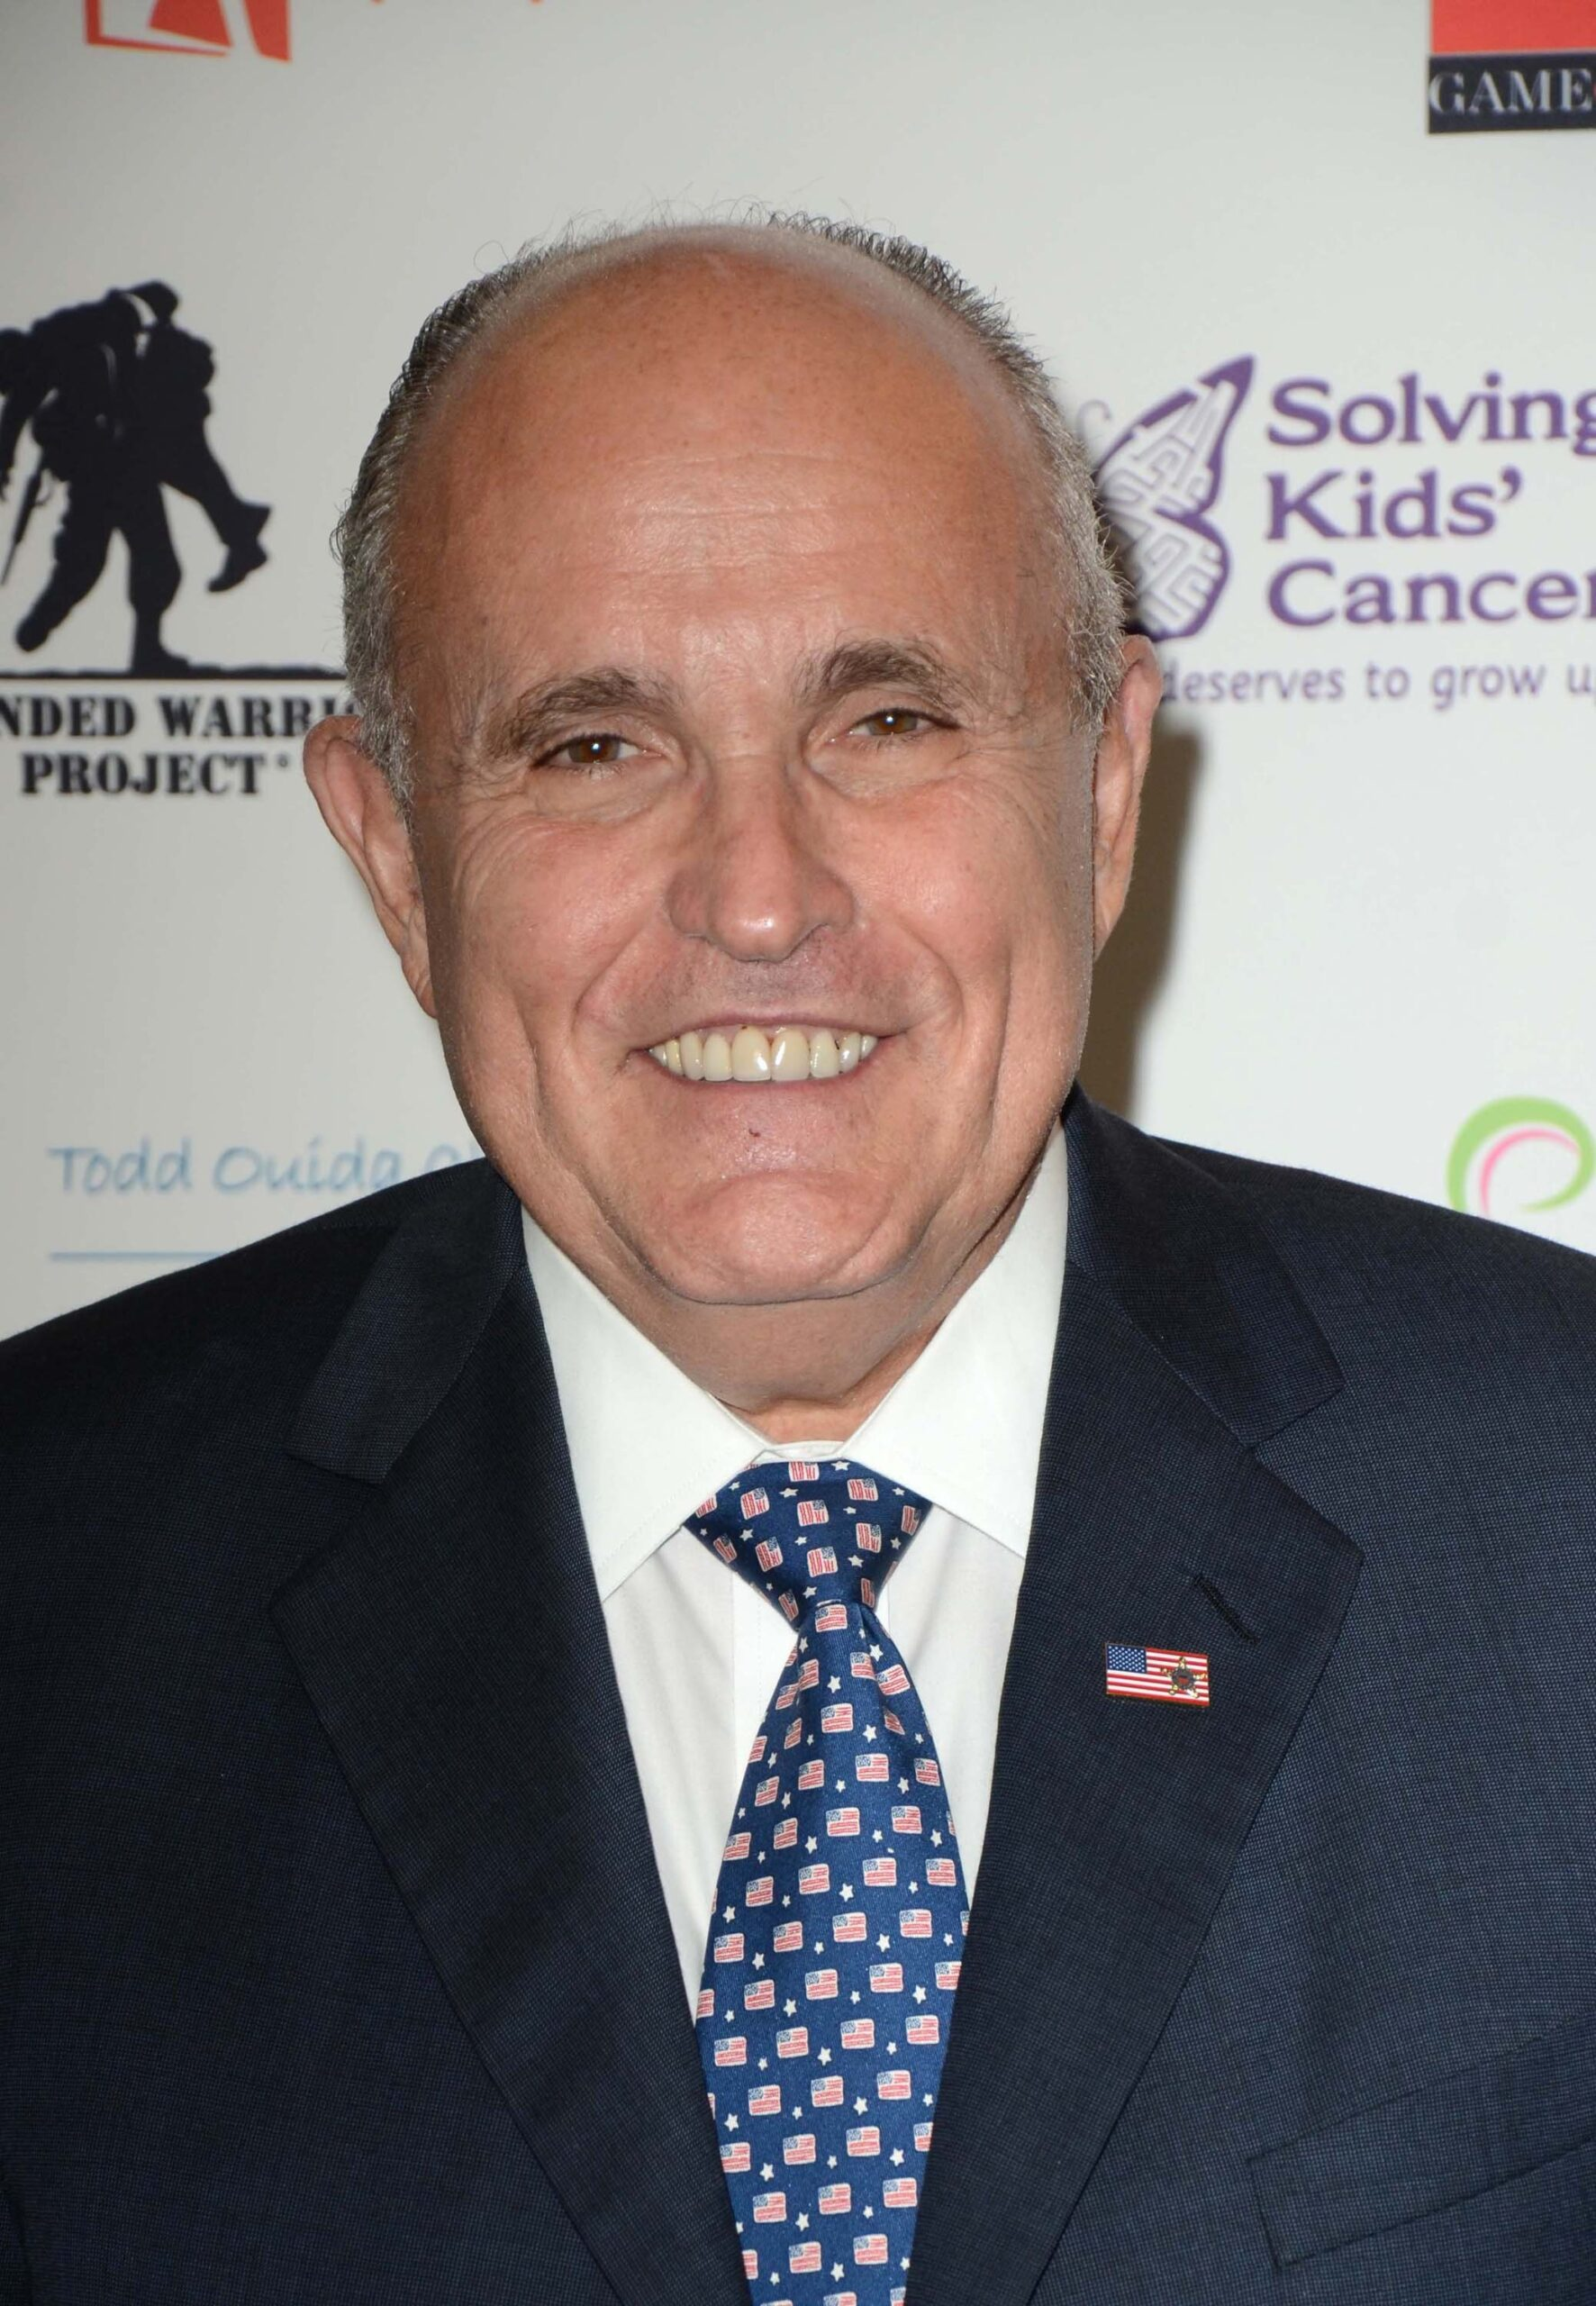 After Giuliani boasted of being elated about getting sued by Dominion for $1.3 billion, he spent a week dodging process server